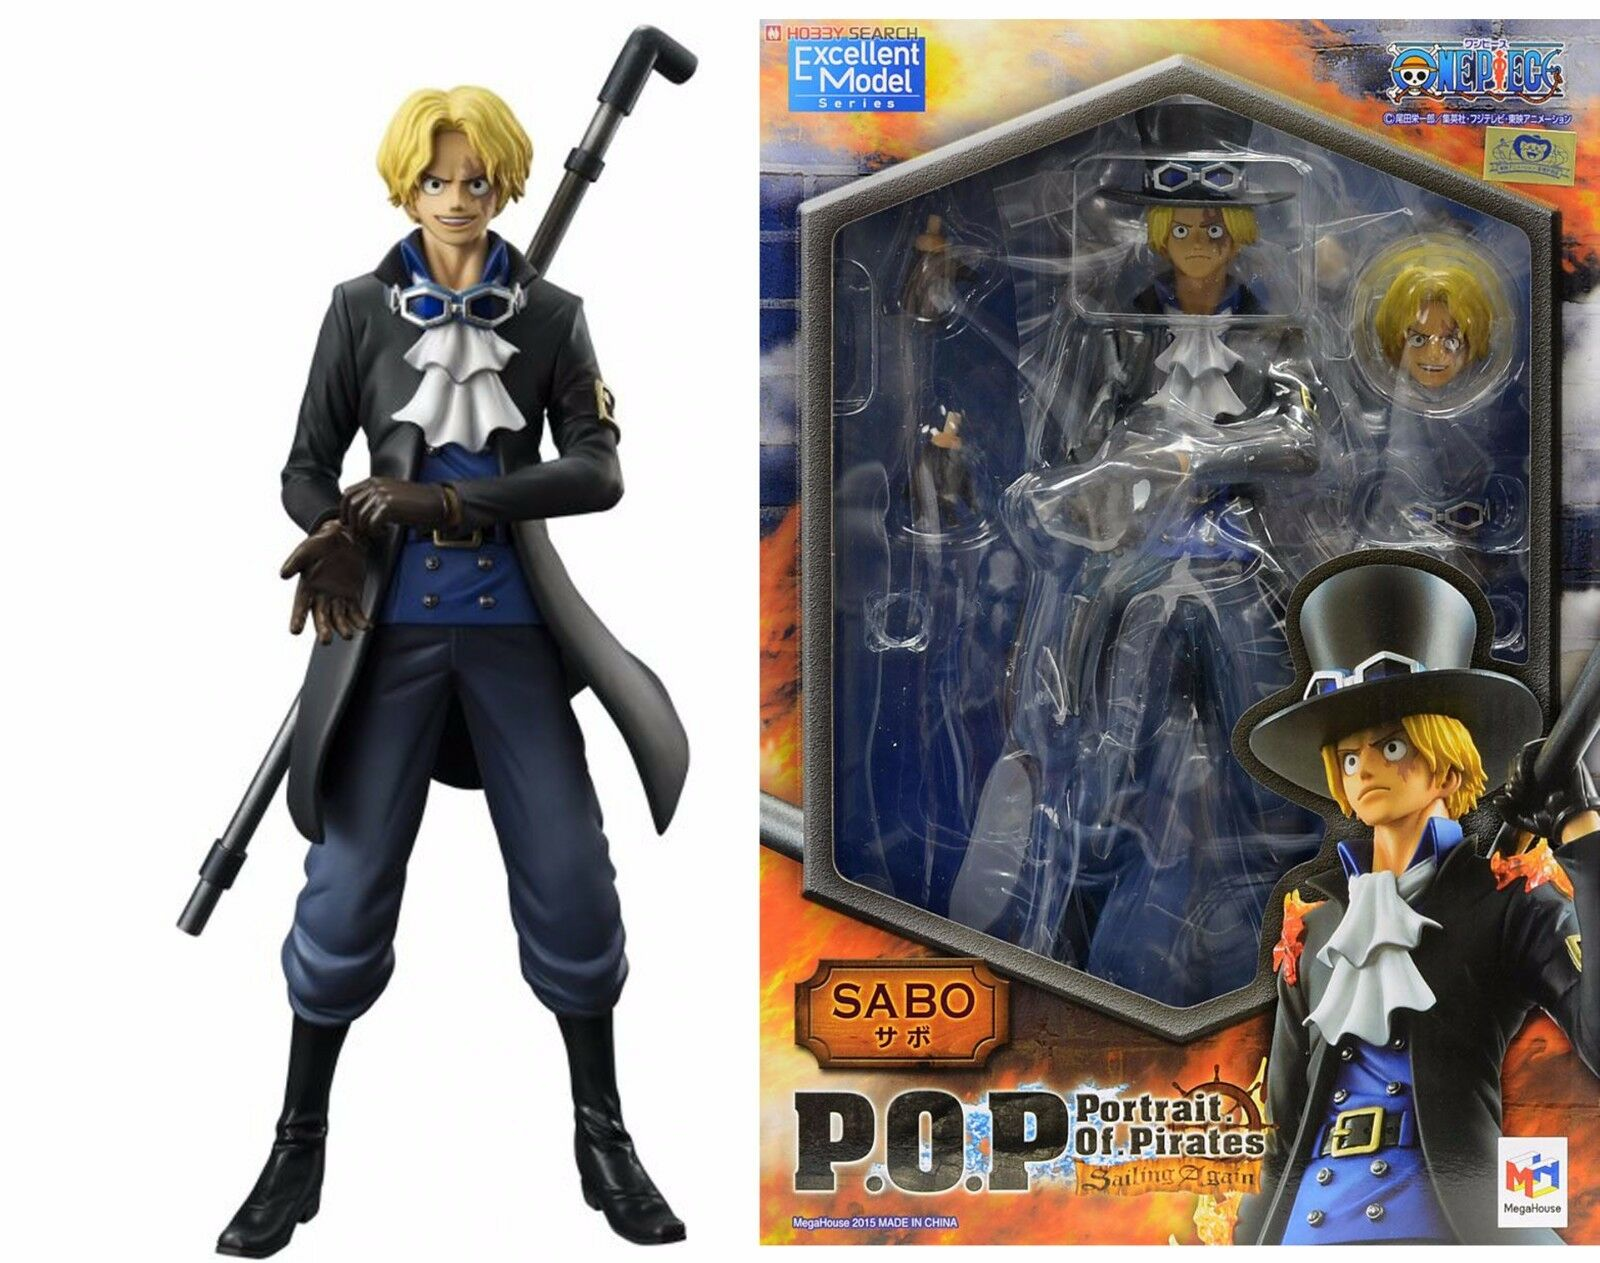 FIGURE ONE PIECE SABO SAILING AGAIN POP P.O.P. DX EXCELLENT MODEL ANIME MANGA  1